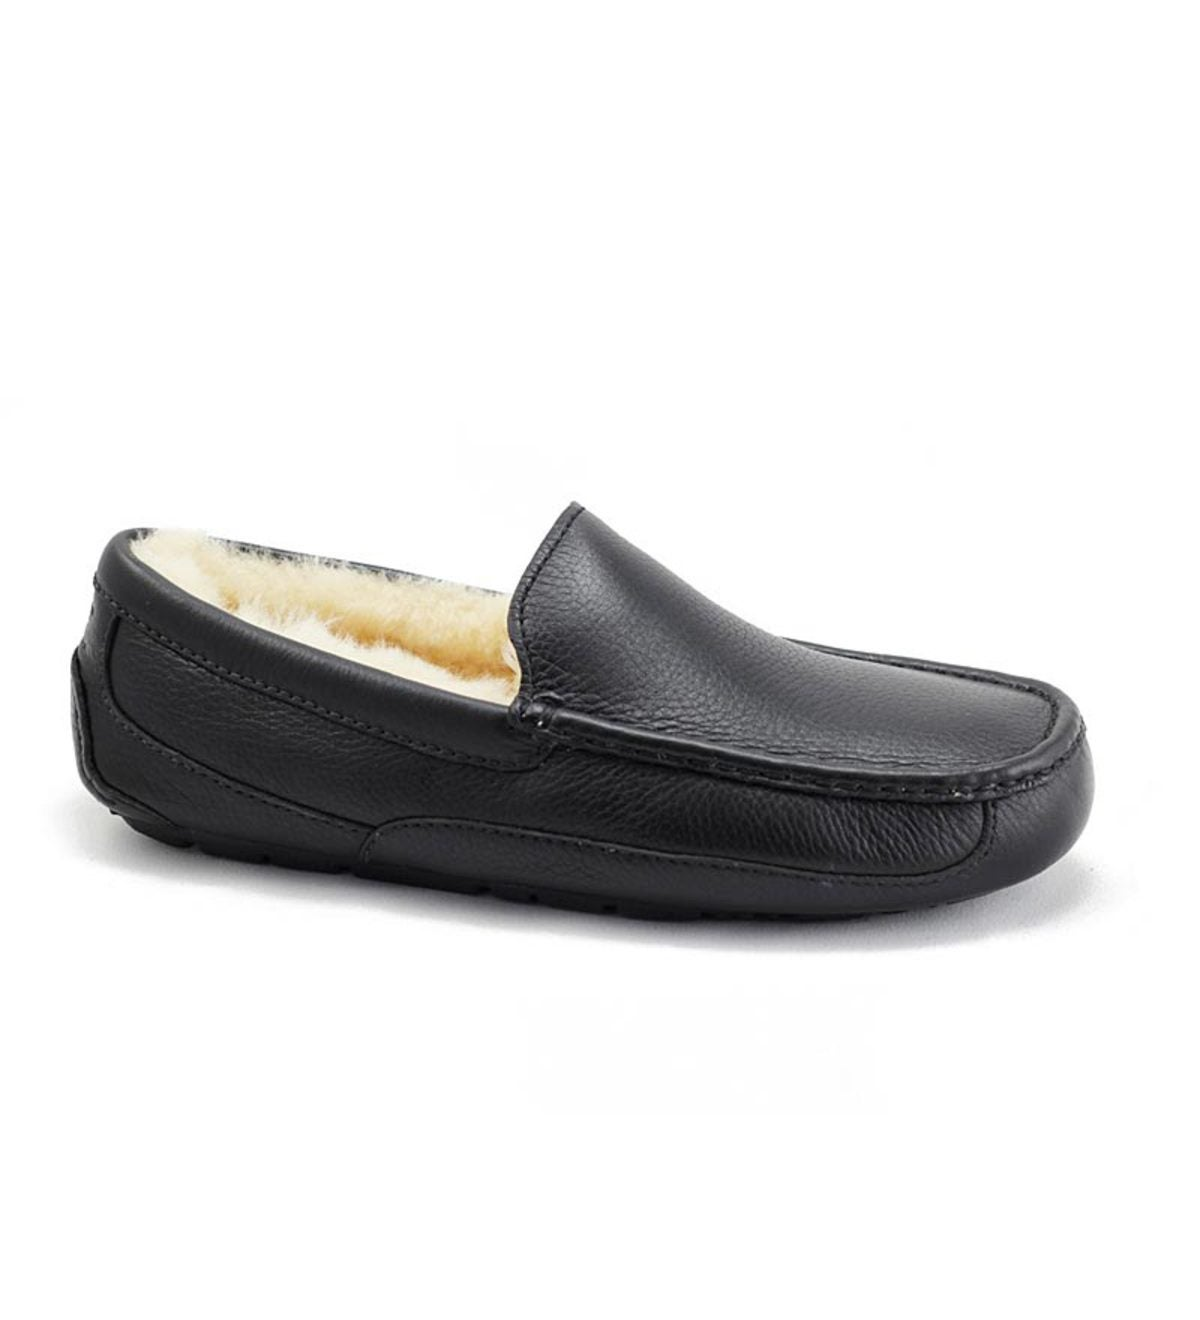 02ada1f3833 UGG® Australia Men s Leather Ascot Slippers - Black Leather ...